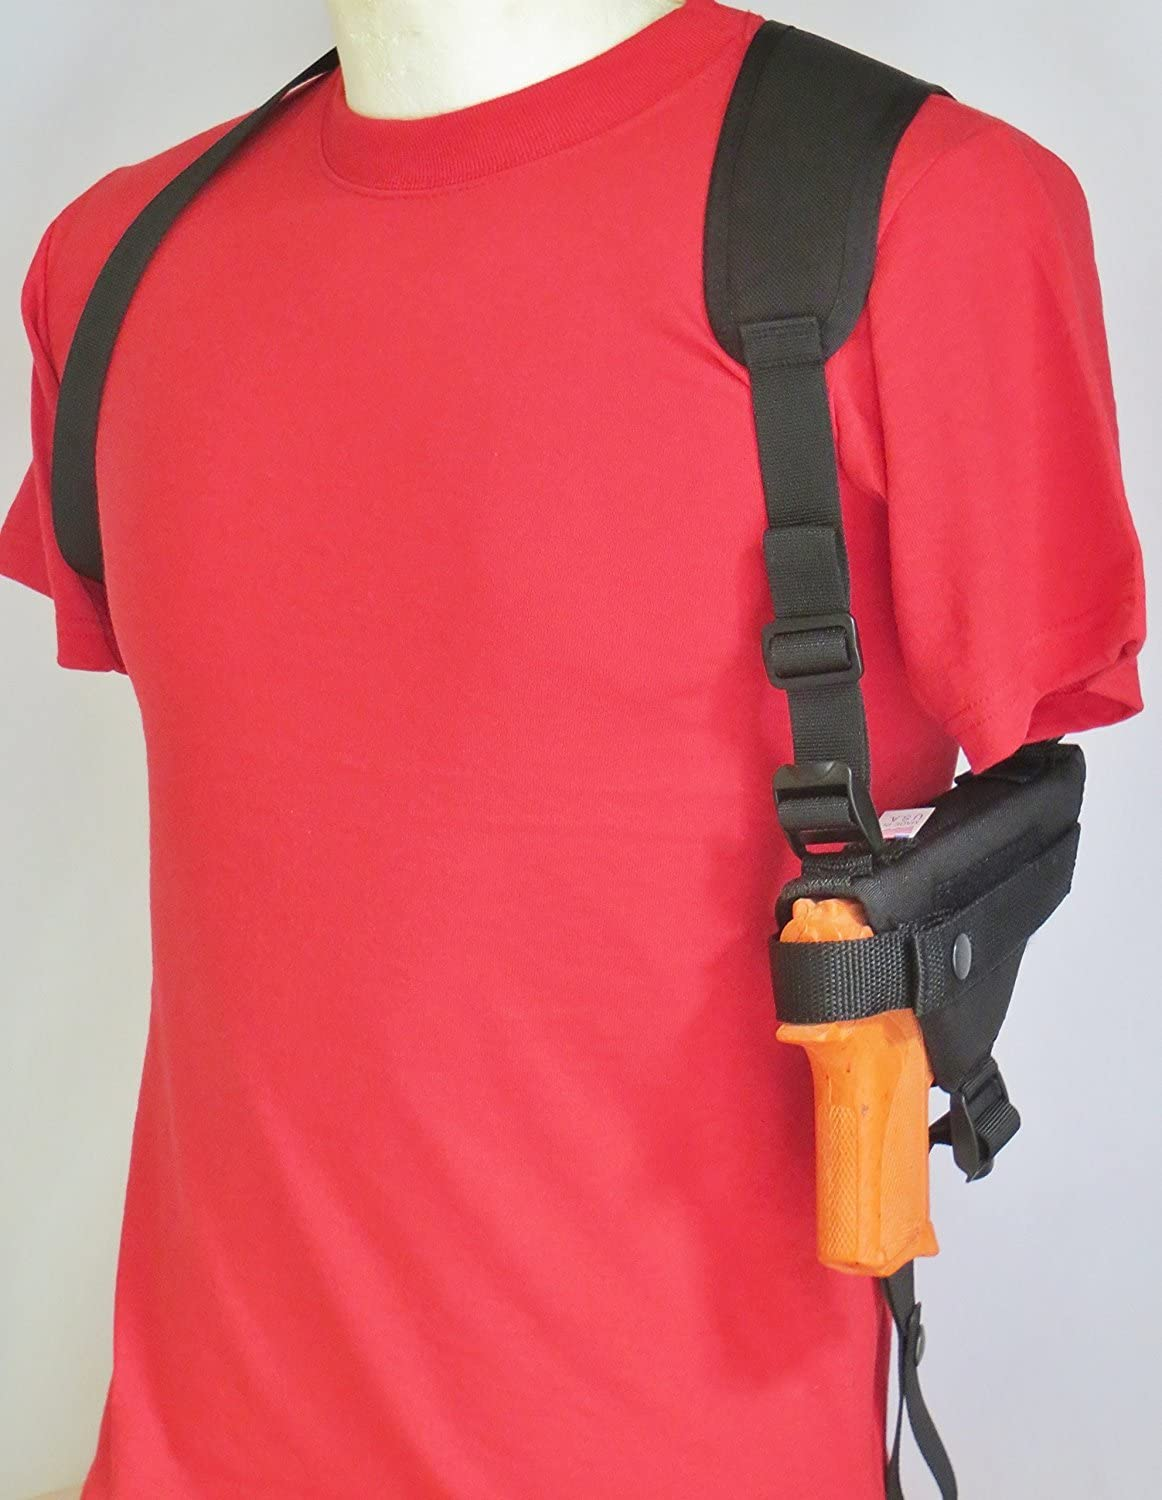 Shoulder Holster Taurus Millenium G2 PT111, PT140 with Underbarrel Laser Mounted on Gun